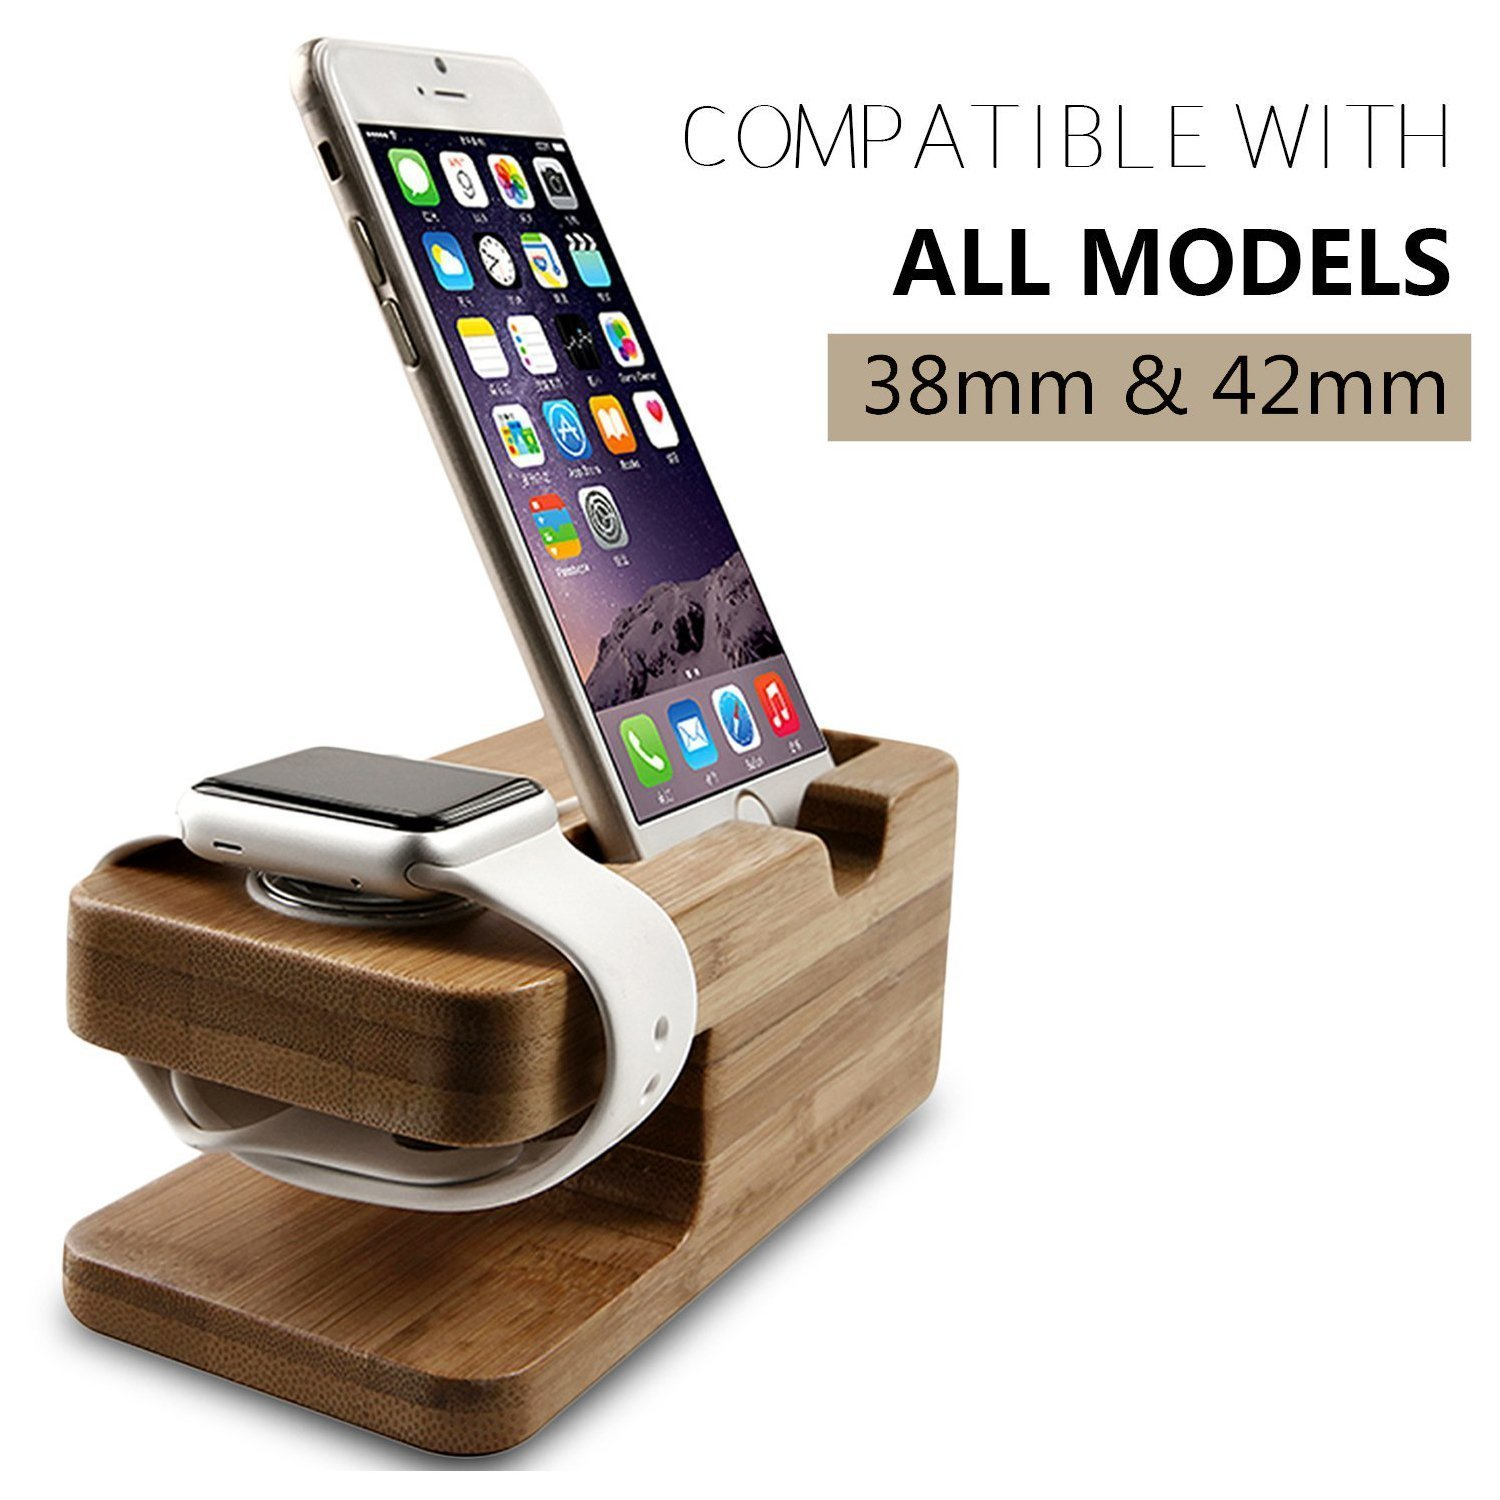 stand holder desk iphone tablet charging x dock plus itm ipad cell phone mate docking station charger for